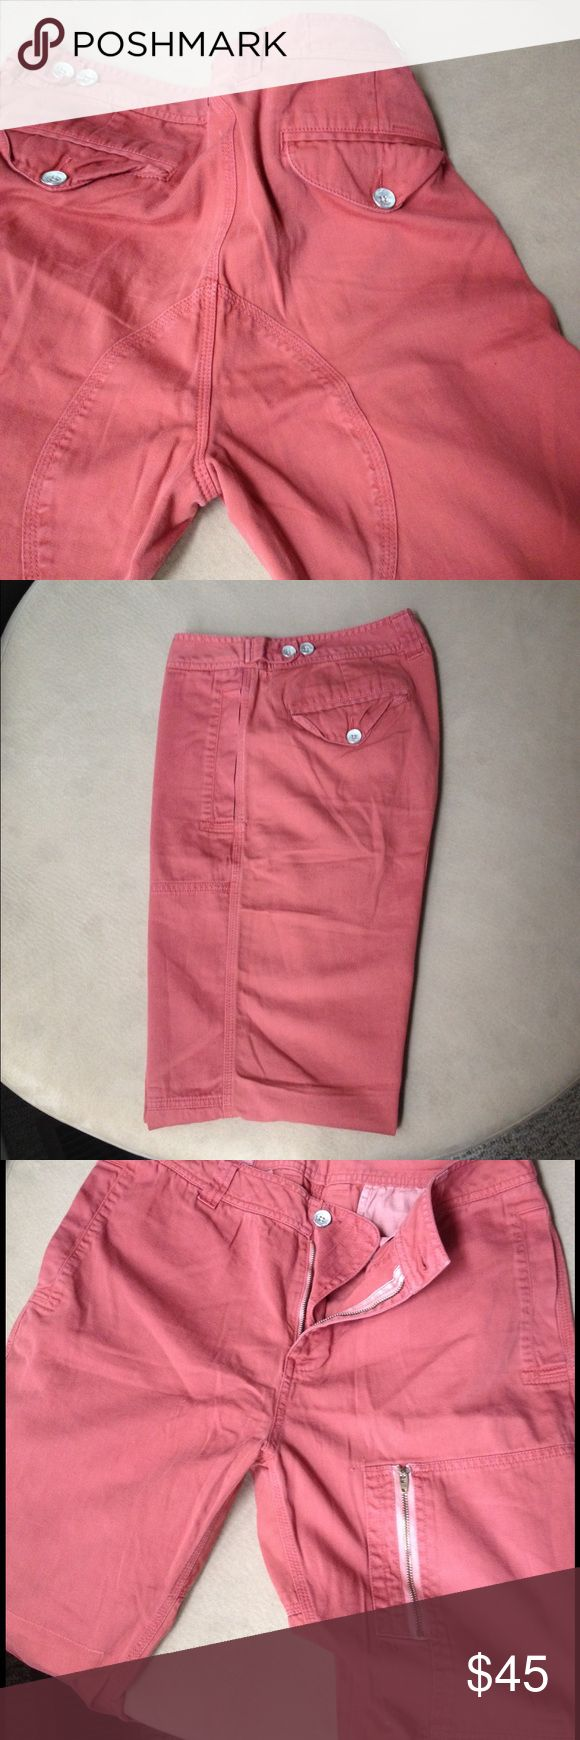 Selling this Threads 4 Thought Men's Faded Red / Salmon Pants on Poshmark! My username is: ghb27. #shopmycloset #poshmark #fashion #shopping #style #forsale #Threads 4 Thought #Other